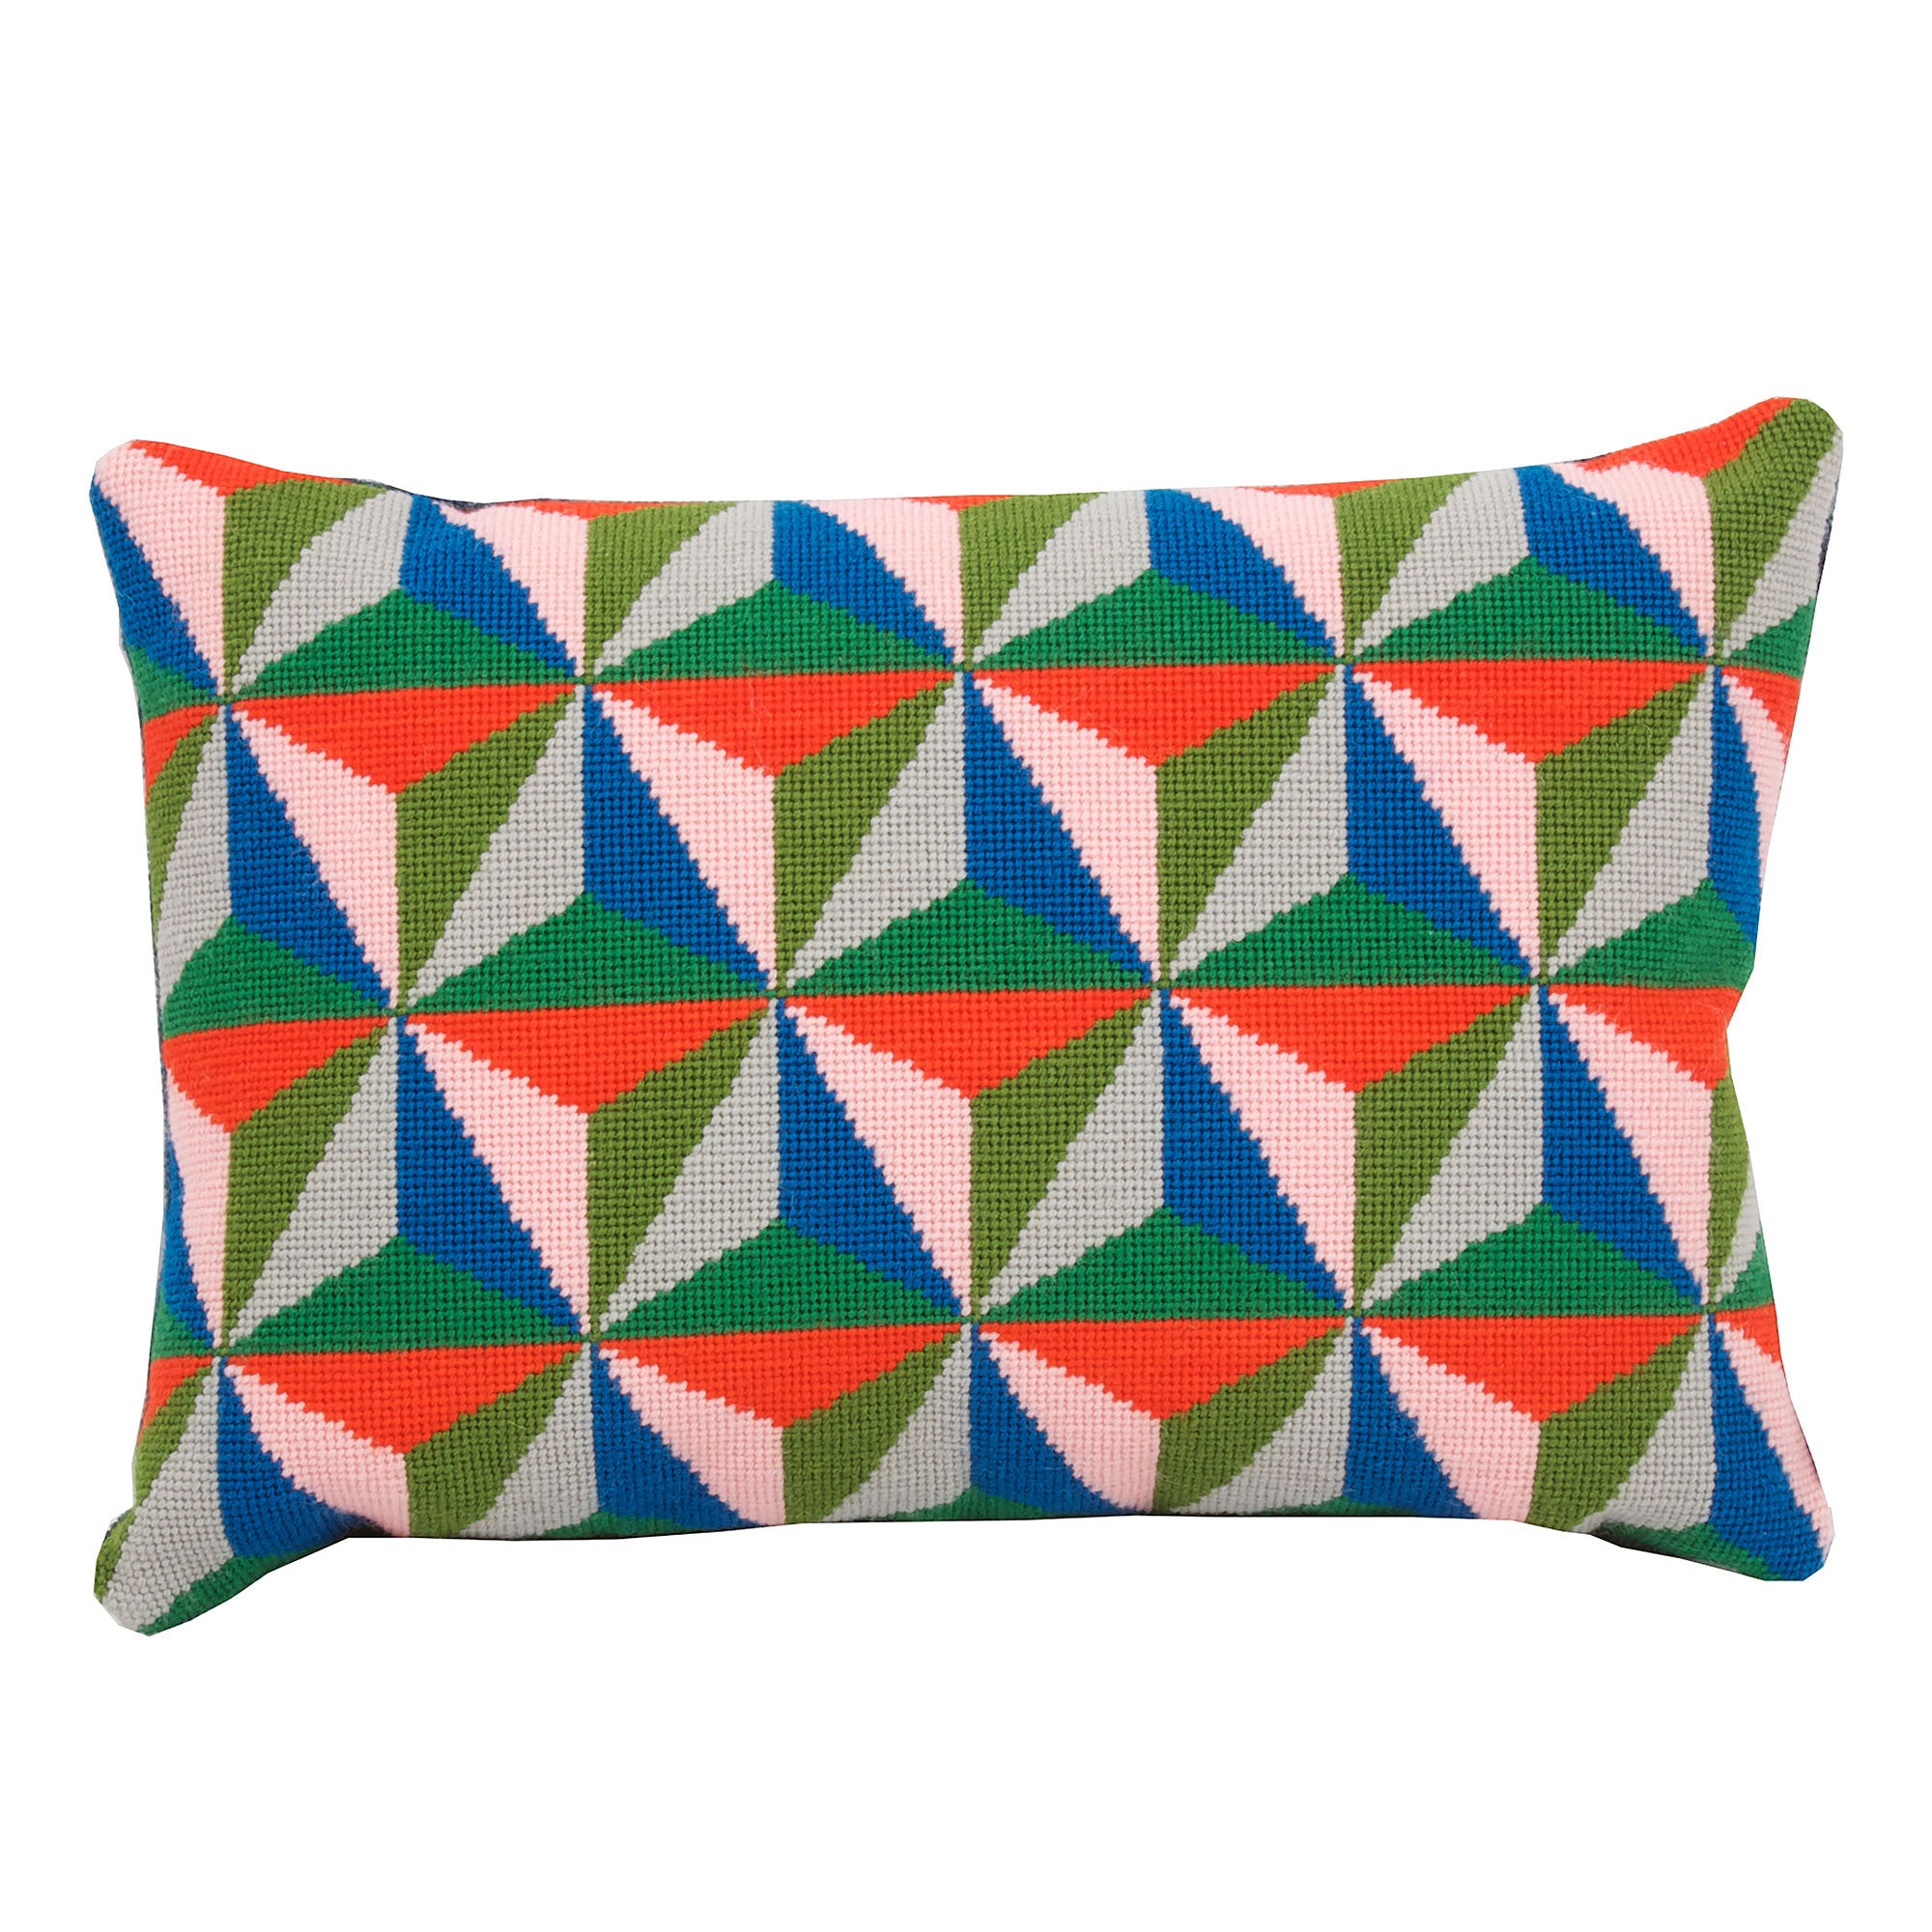 Pentreath & Hall Tetrahedron cushion - Blue, Red and Green